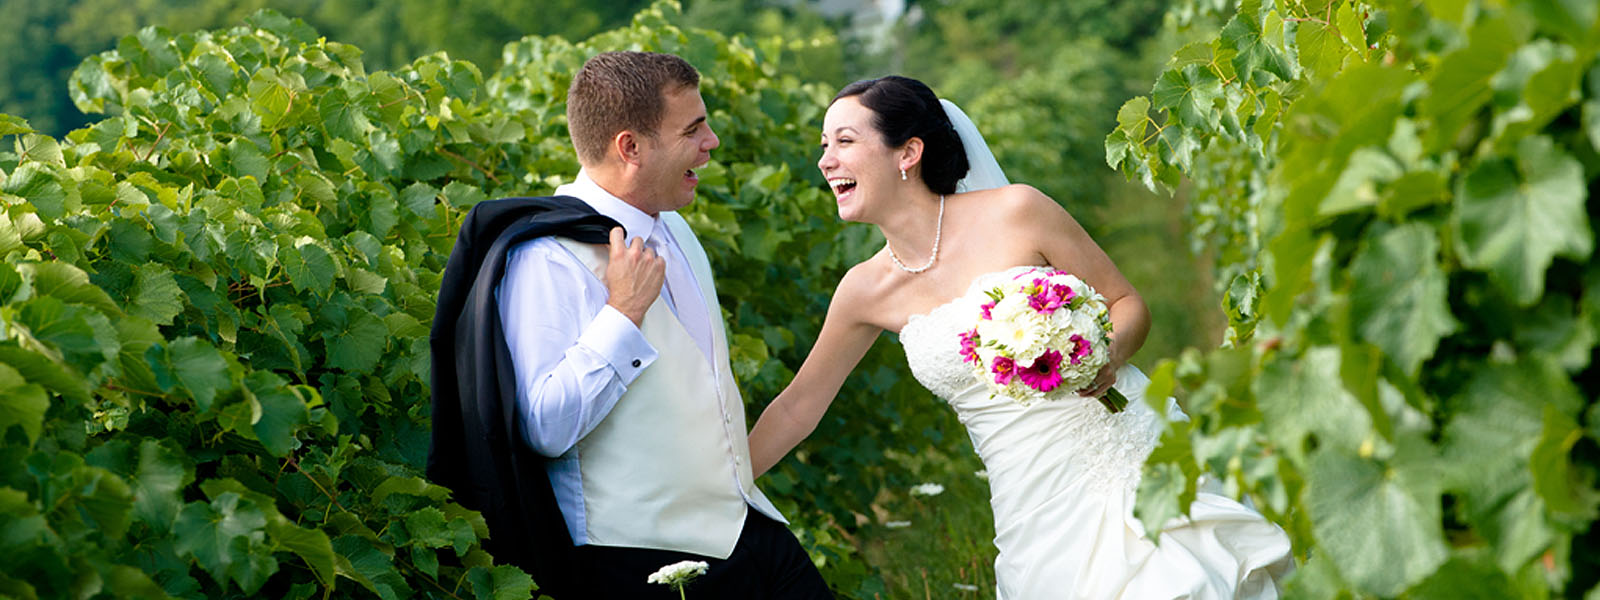 Wedding Photographer in Horseheads, Elmira, Corning, Watkins Glenn and Ithaca NY. The Finger ...